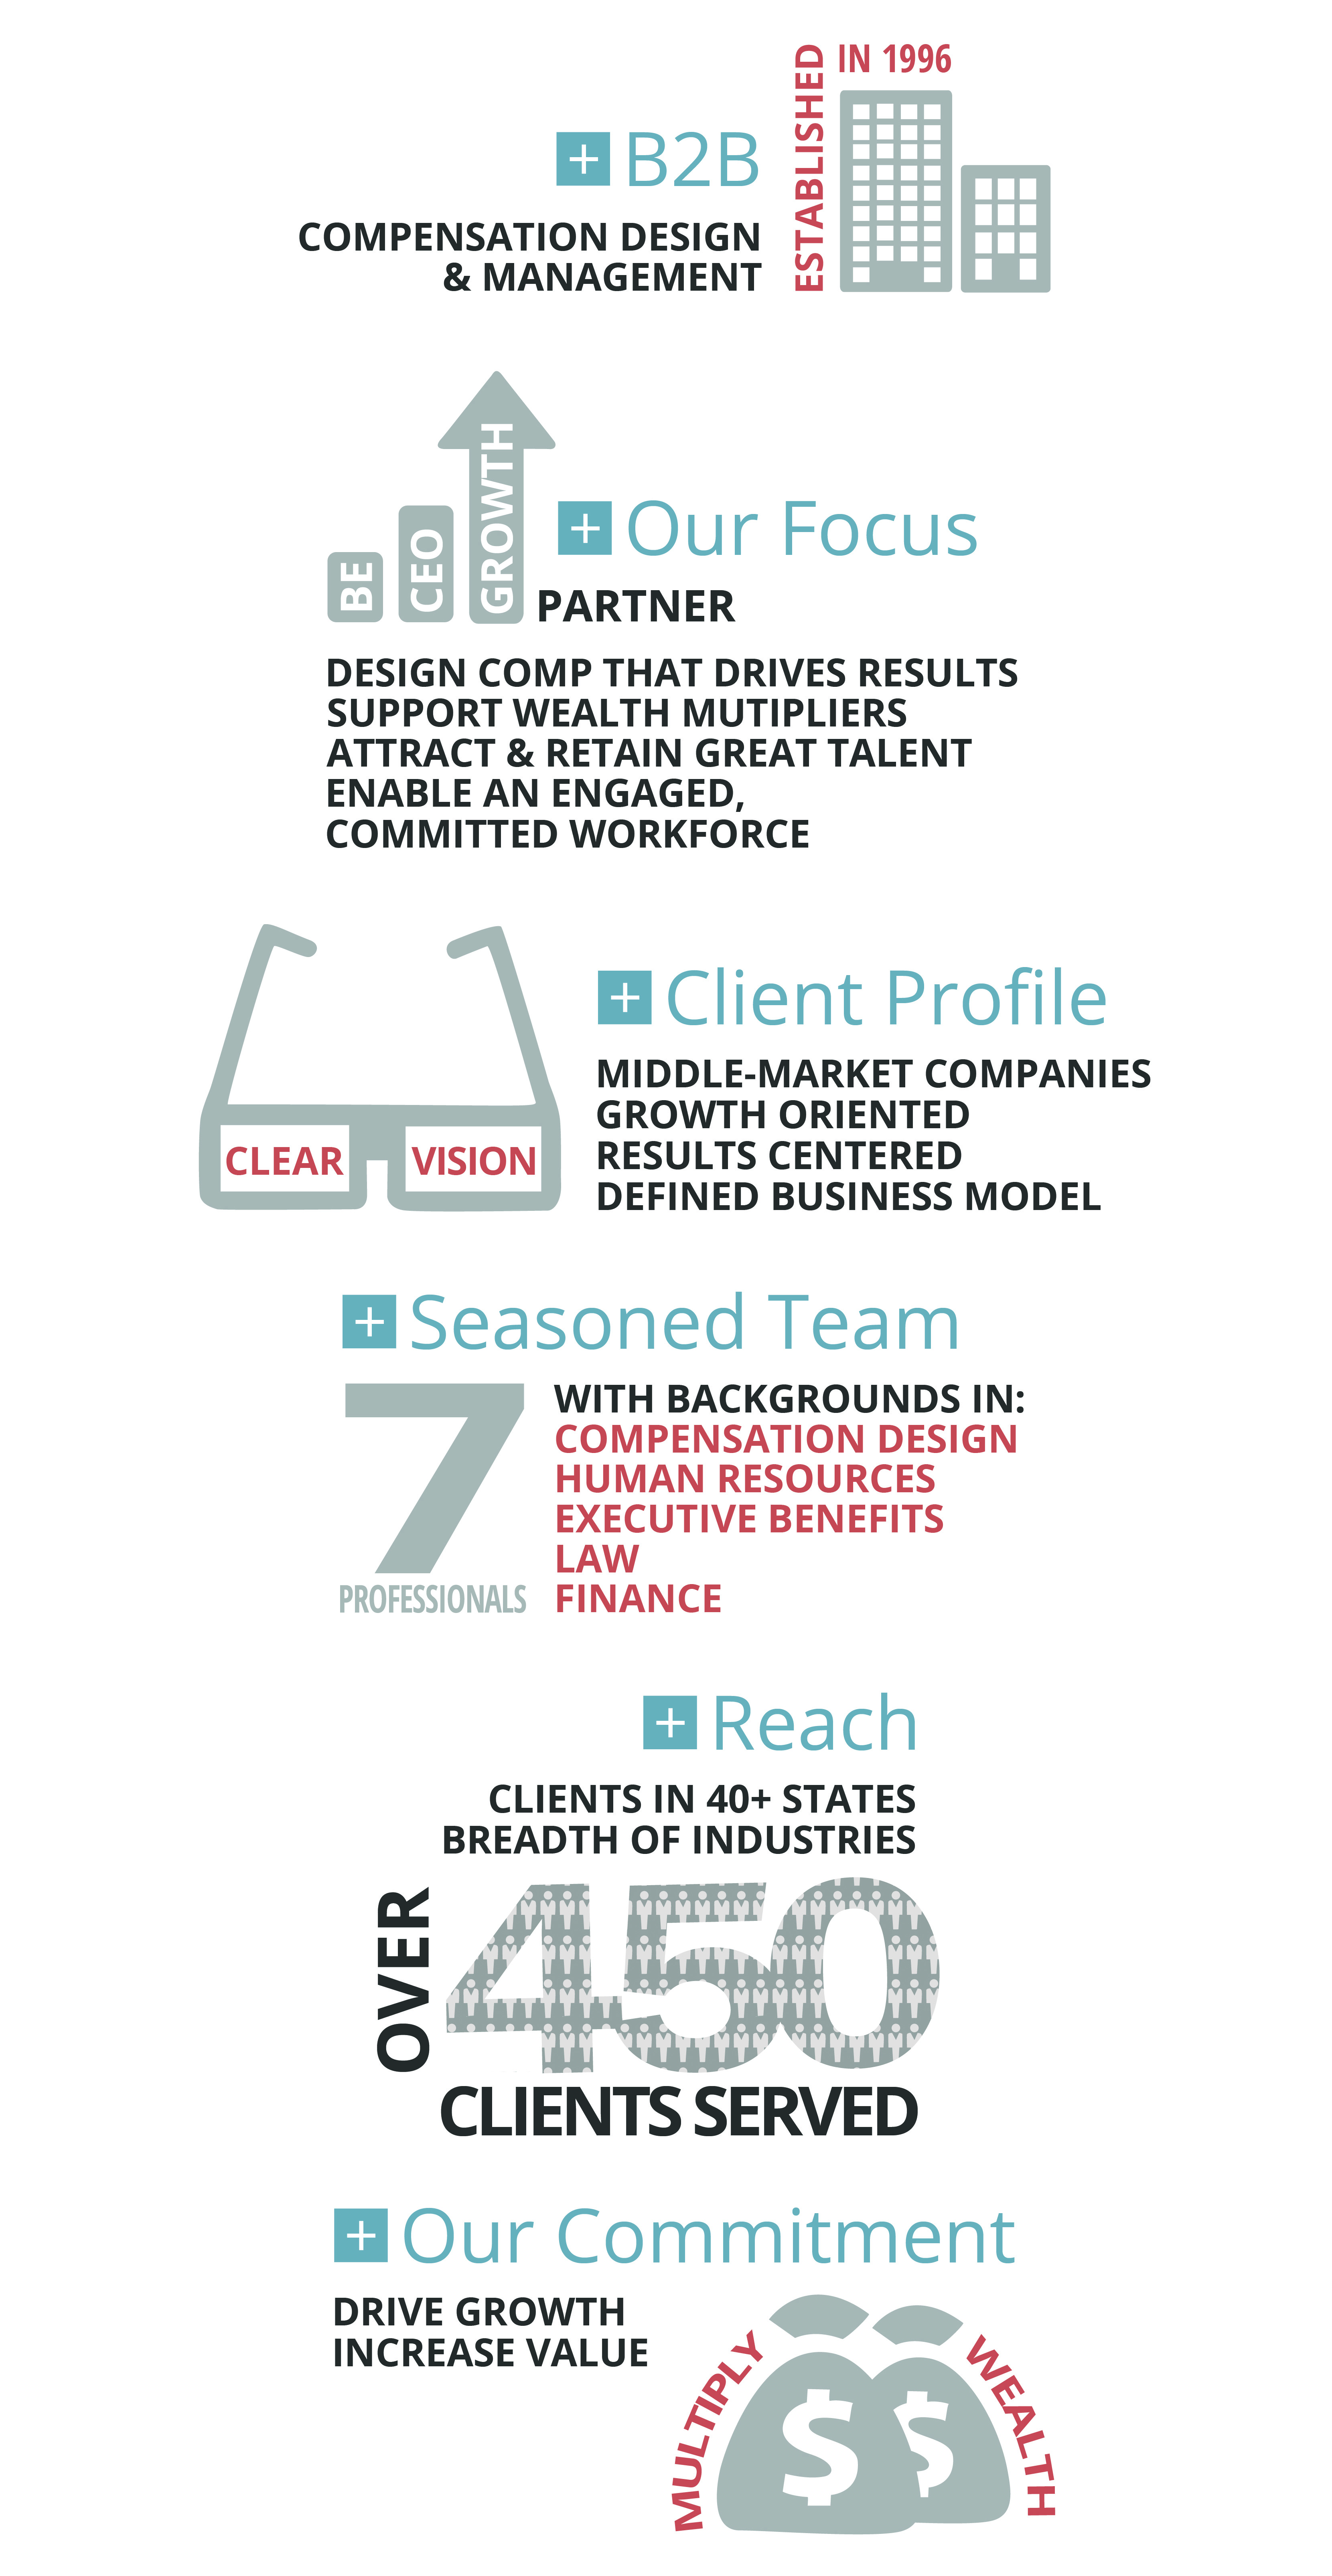 VisionLink Who We Are Infographic